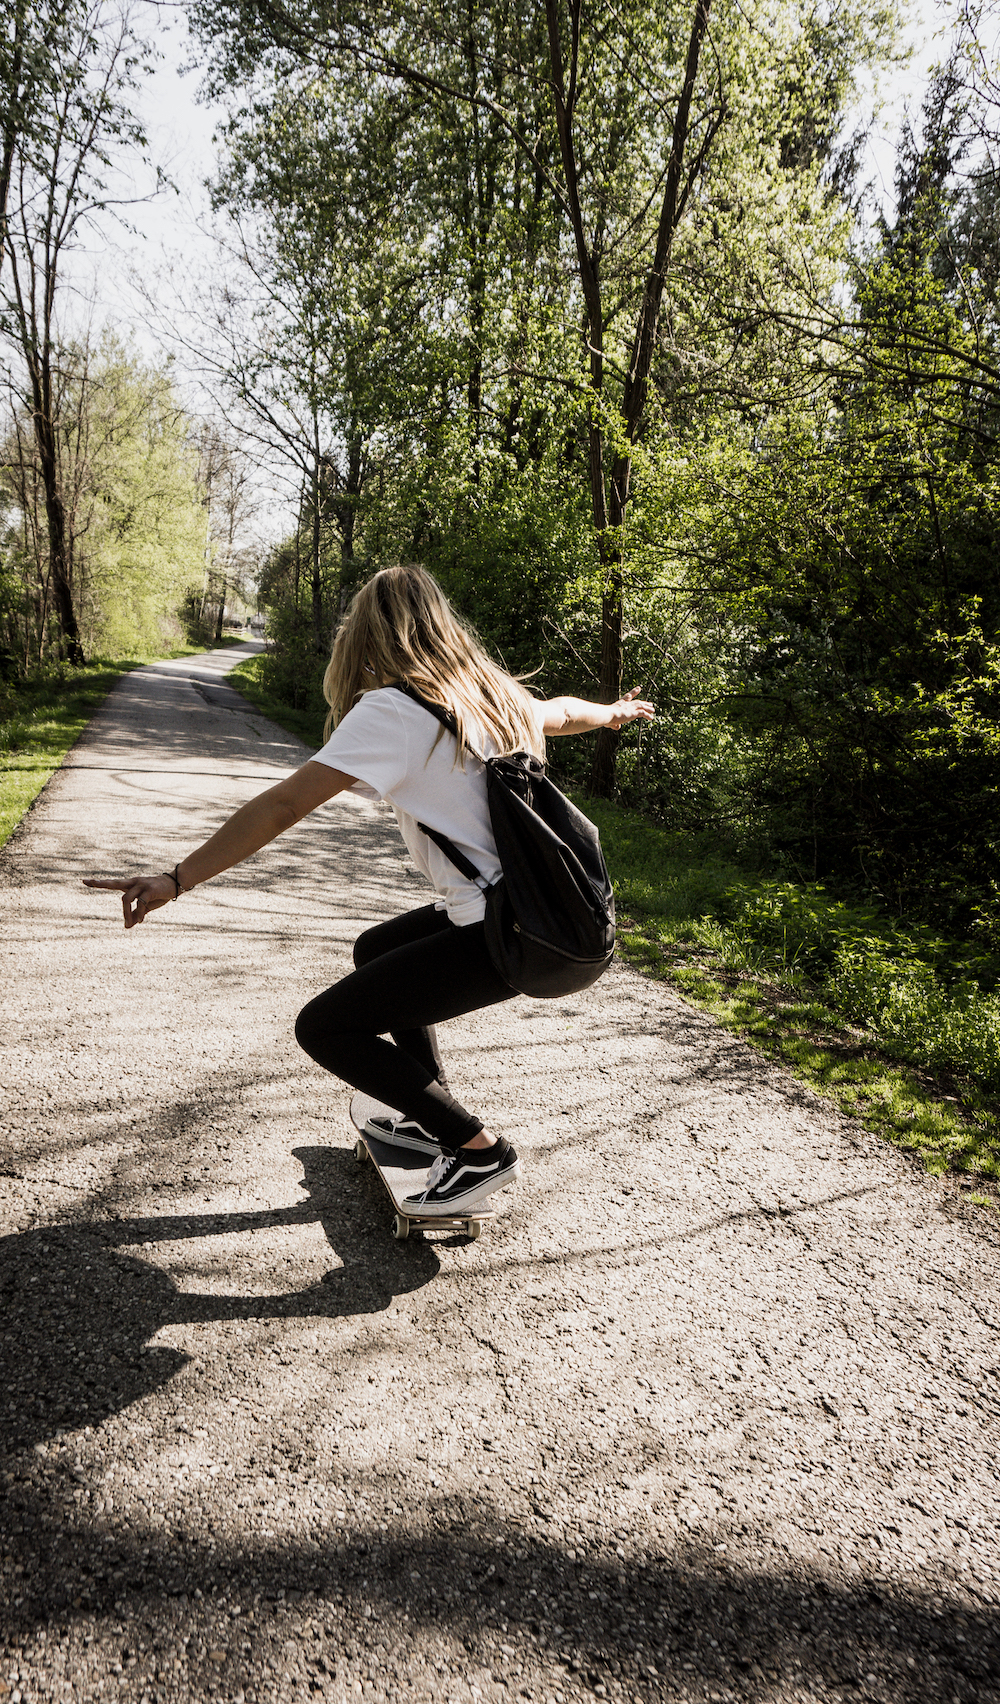 Female Skateboarding - mein neues Hobby